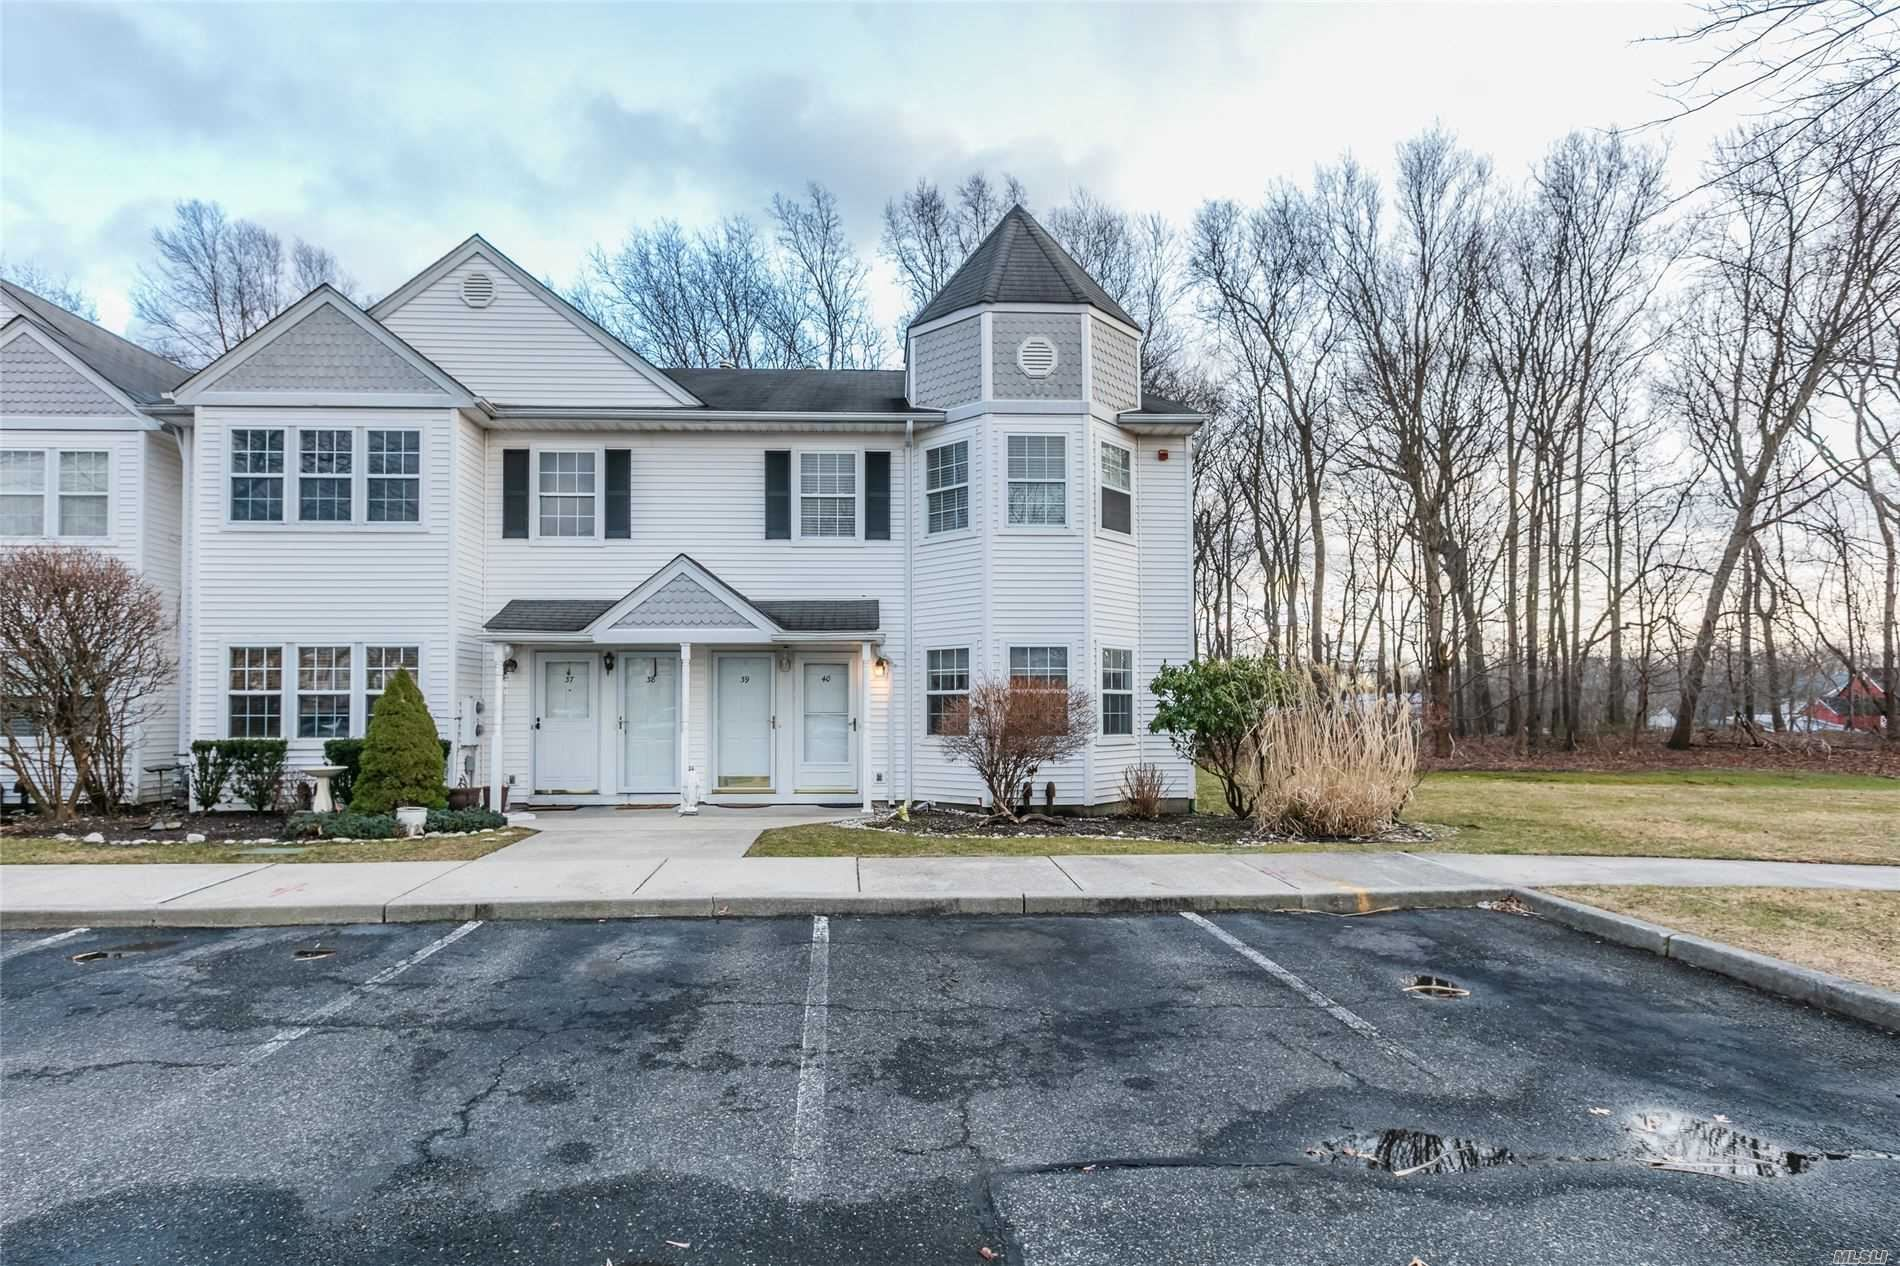 40 Country View Lane, Middle Island, NY 11953 - MLS#: 3198328